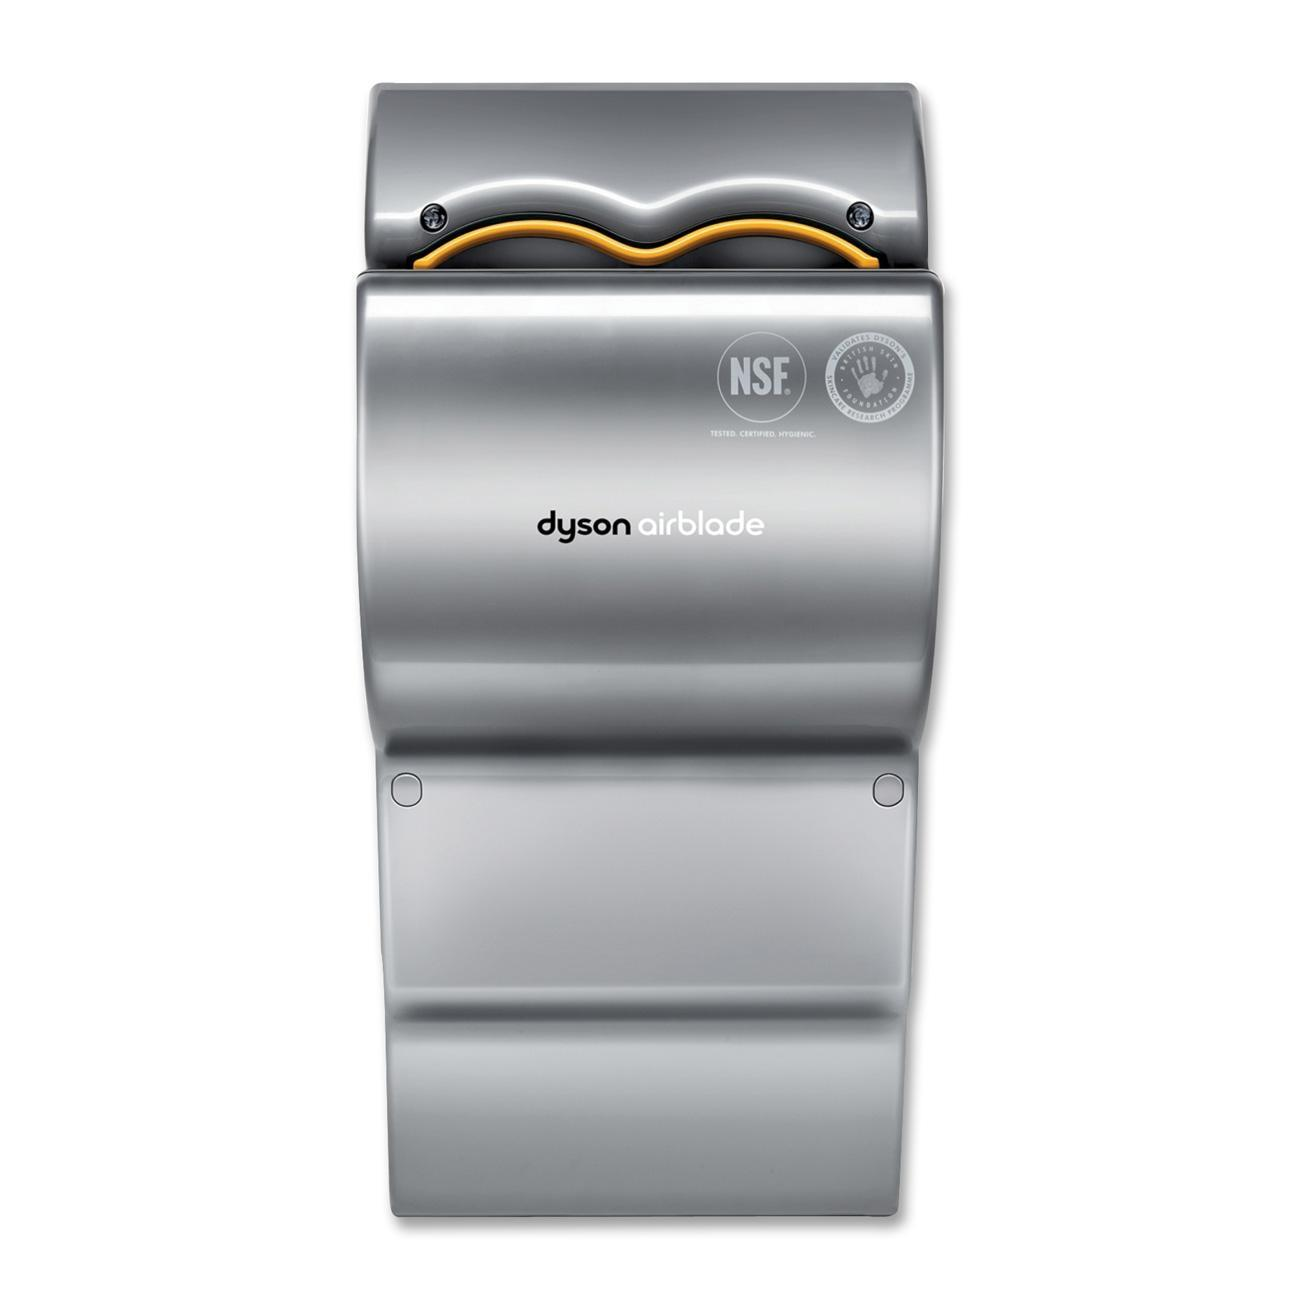 Dyson-Direct-1304301-Dyson-AB02-Airblade-Hygienic-Aluminum-Hand-Dryer.jpg 1,300×1,300 pixels